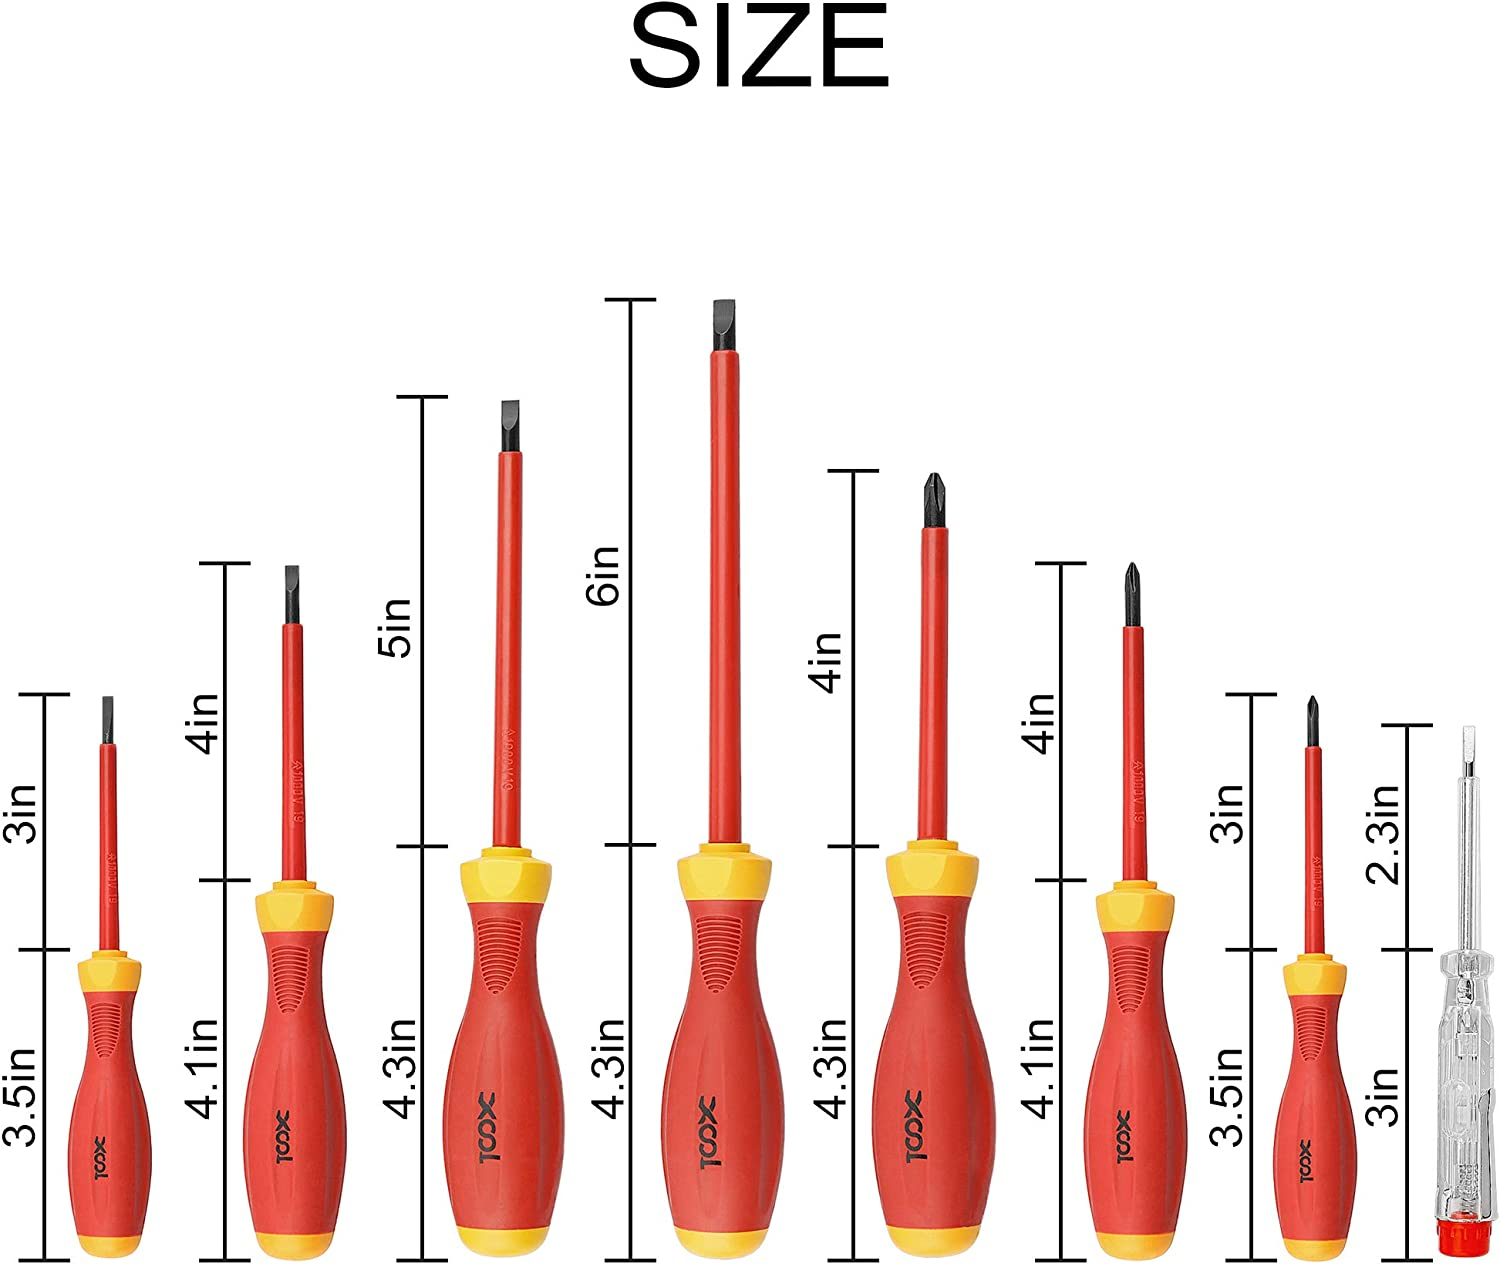 XOOL 1000V Insulated Electrician Screwdrivers Set with Magnetic Tips, Slotted and Phillips Bits Non-Slip Grip, 8 Piece 81Xex3wJDxL